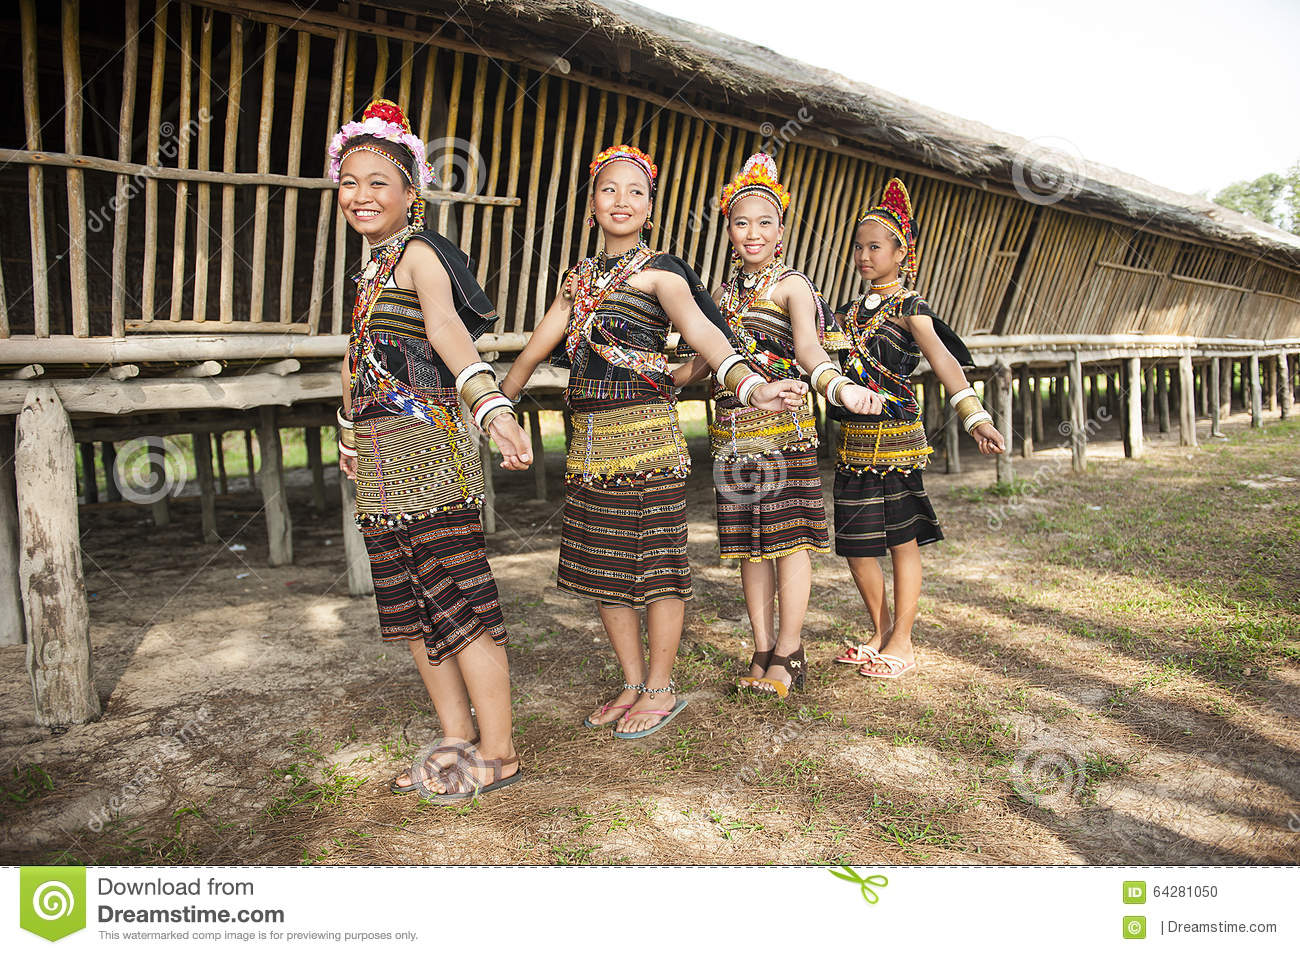 Ladies from Rungus ethnic wearing traditional costume.